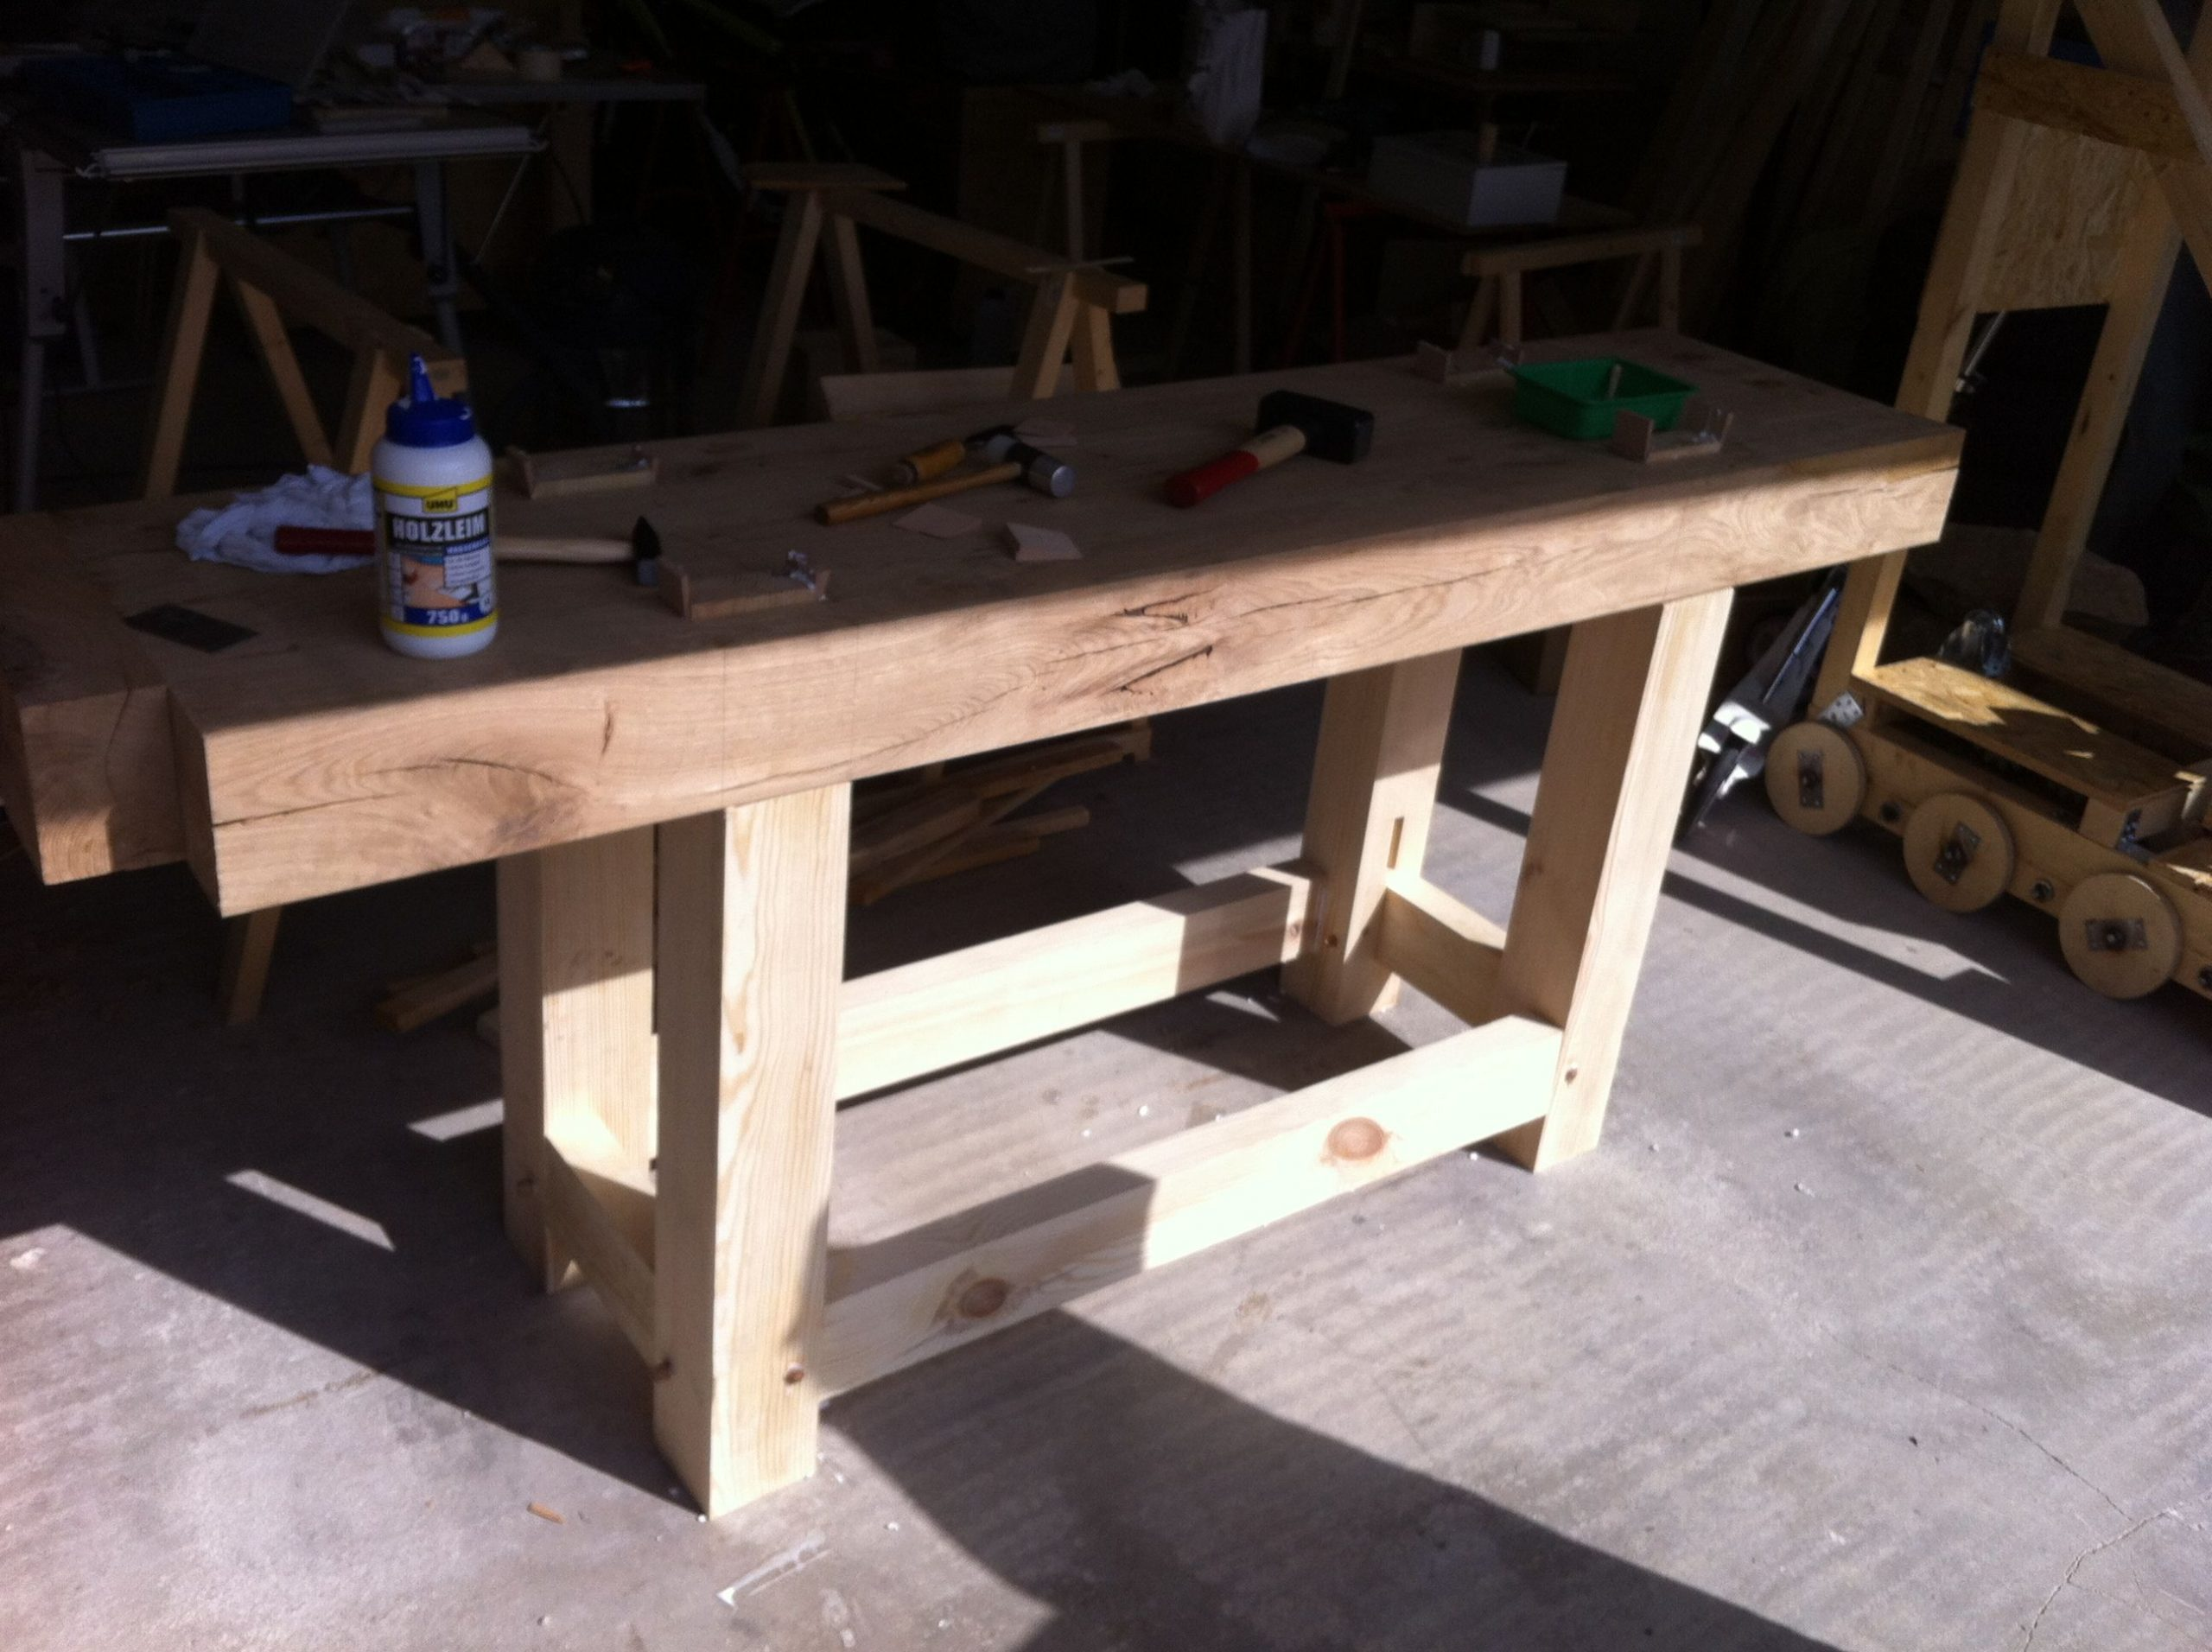 Workbench assembled